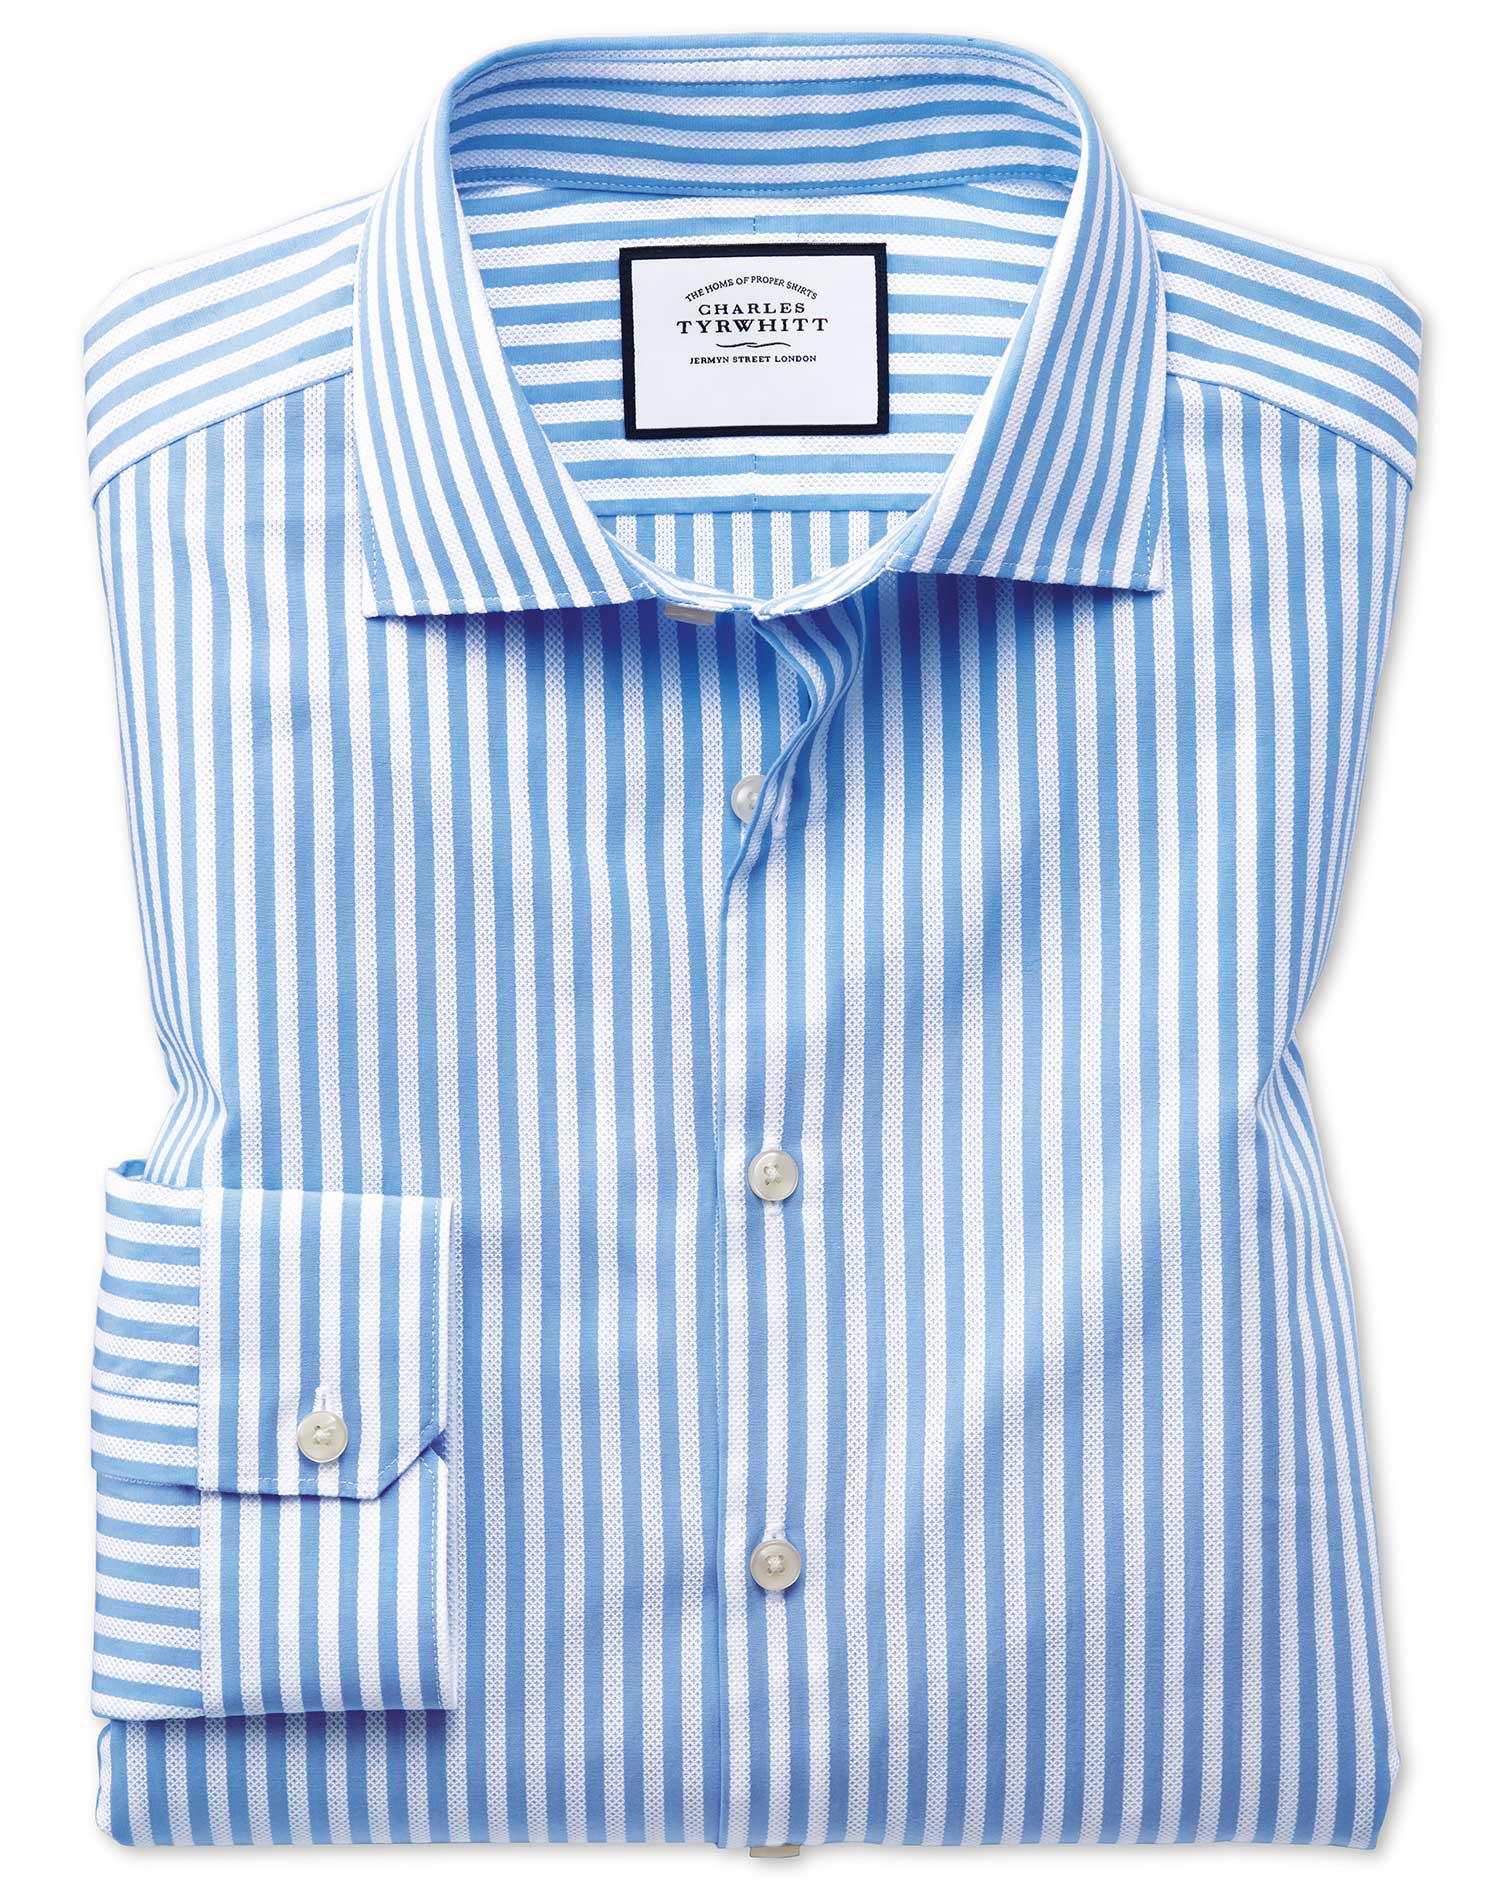 Super Slim Fit Business Casual Leno Texture Stripe Sky Blue and White Cotton Formal Shirt Single Cuf